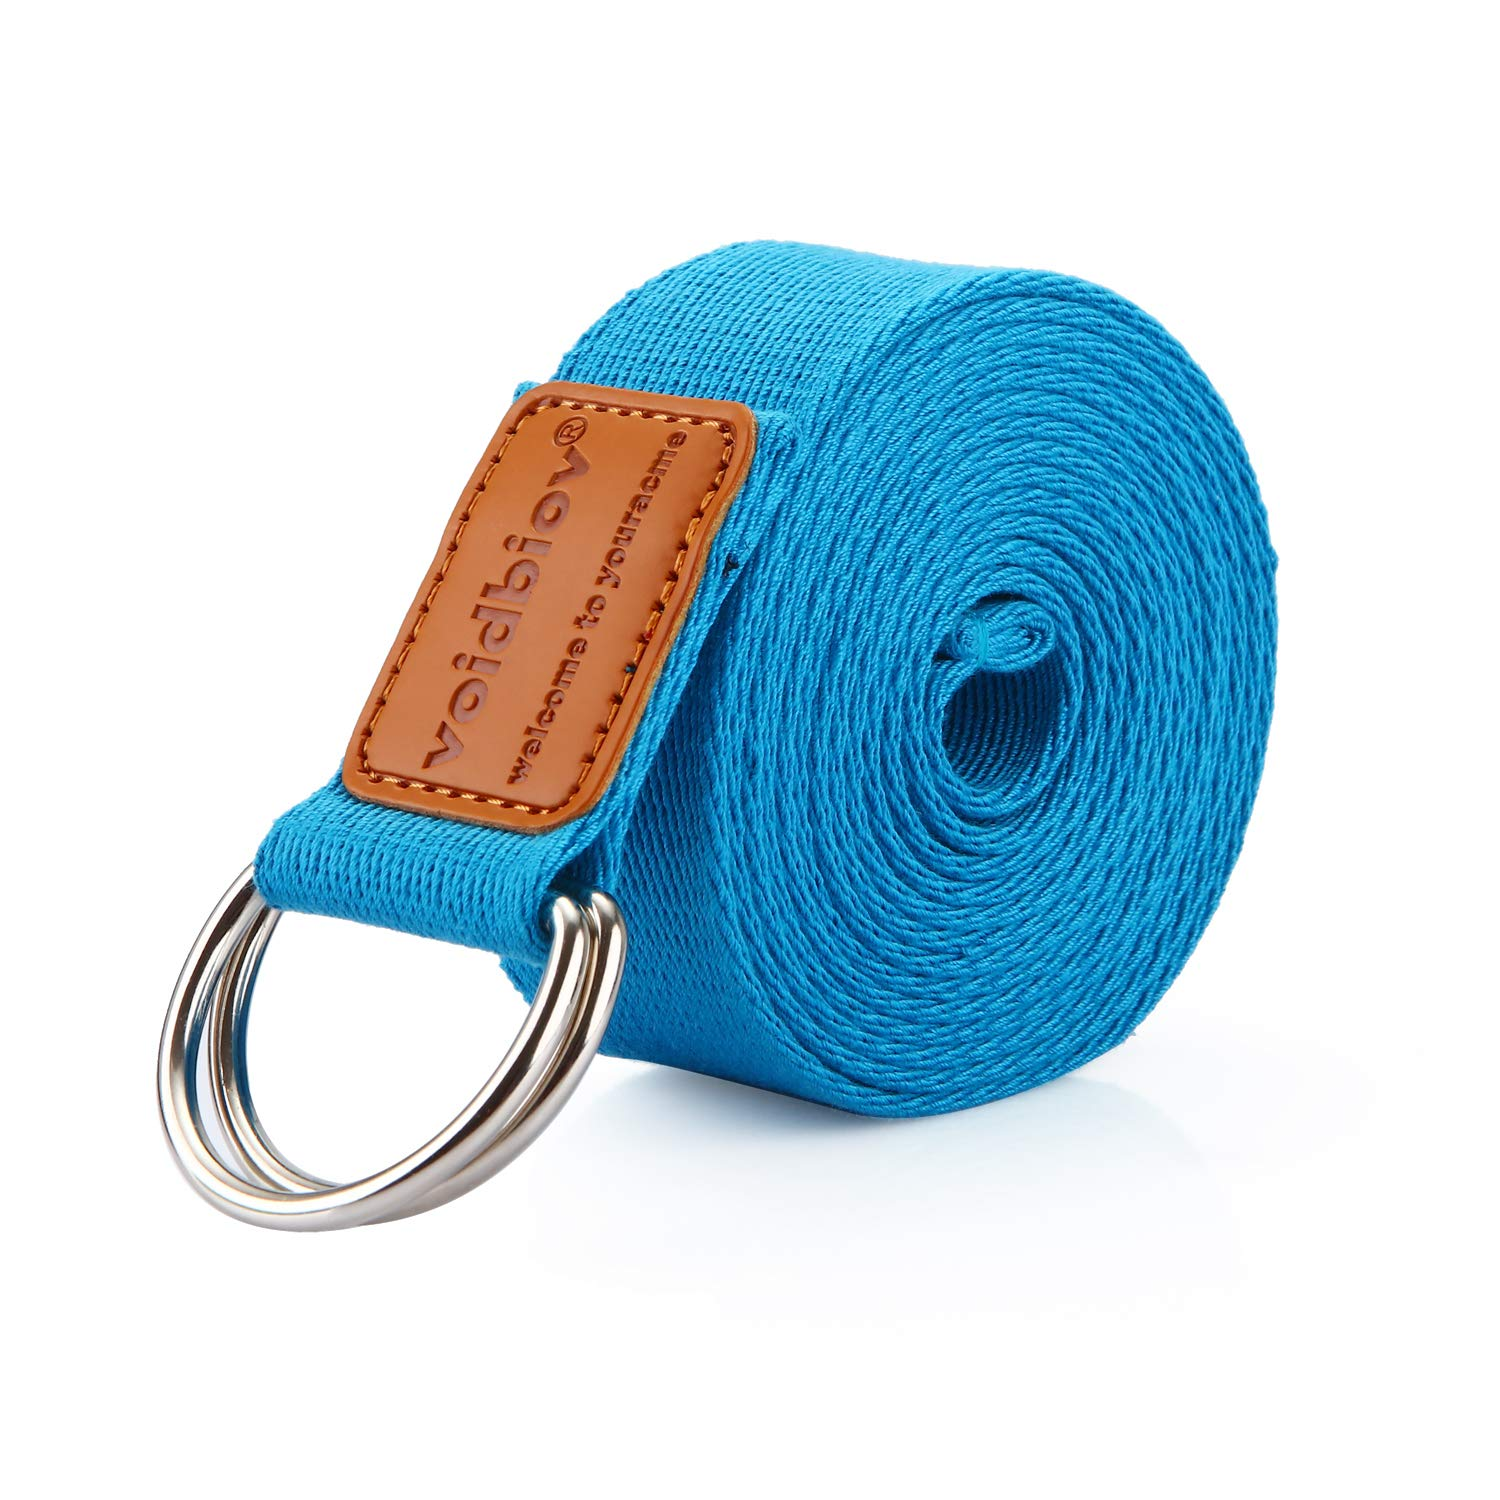 voidbiov D-Ring Buckle Yoga Strap 1.85 or 2.5M, Durable Cotton Adjustable Belt Perfect for Holding Poses, Improving Flexibility and Physical Therapy